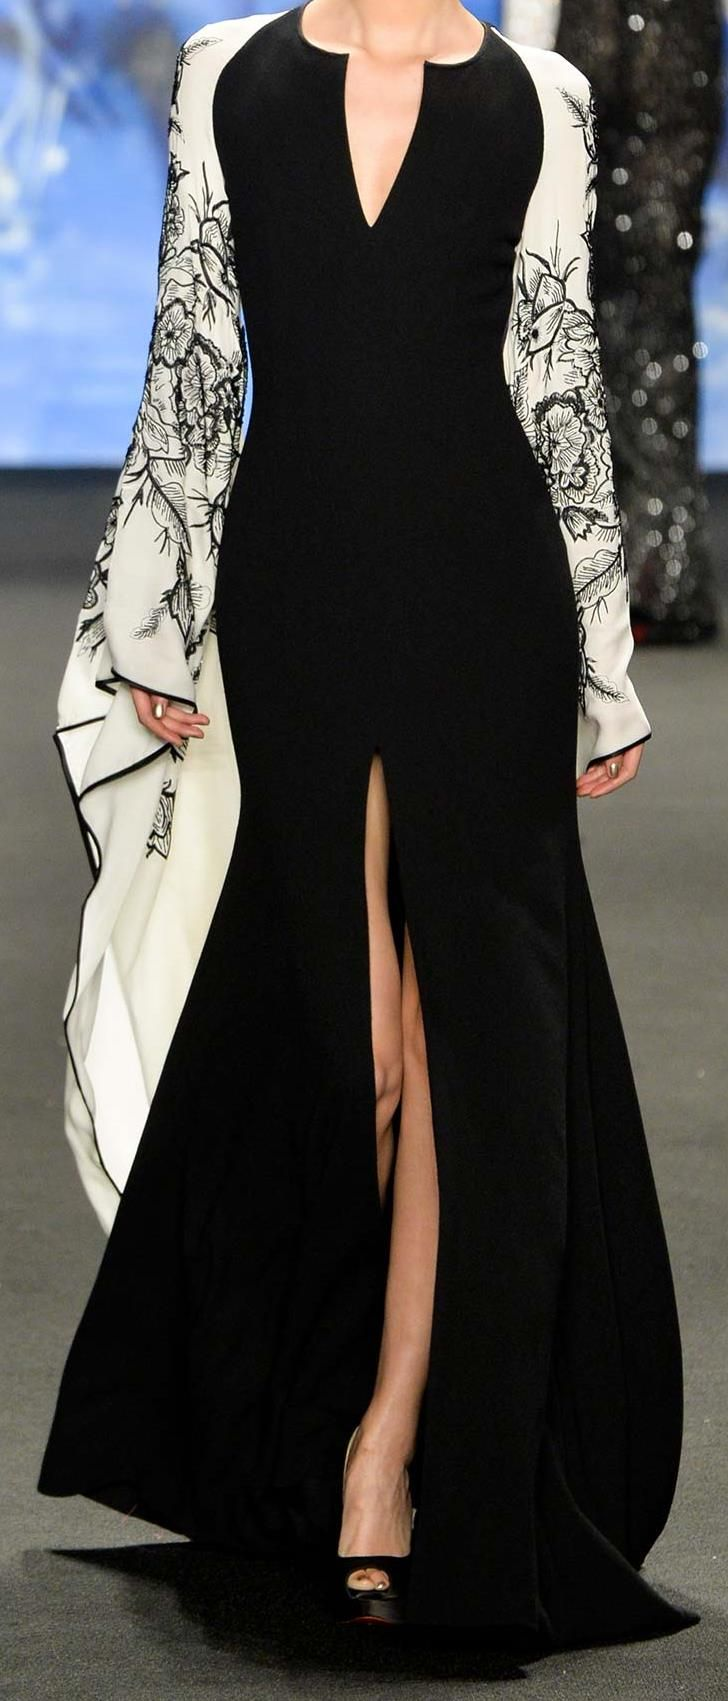 Naeem Khan Fall 2015 RTW stunning black and ivory dress with kimono style sleeve.